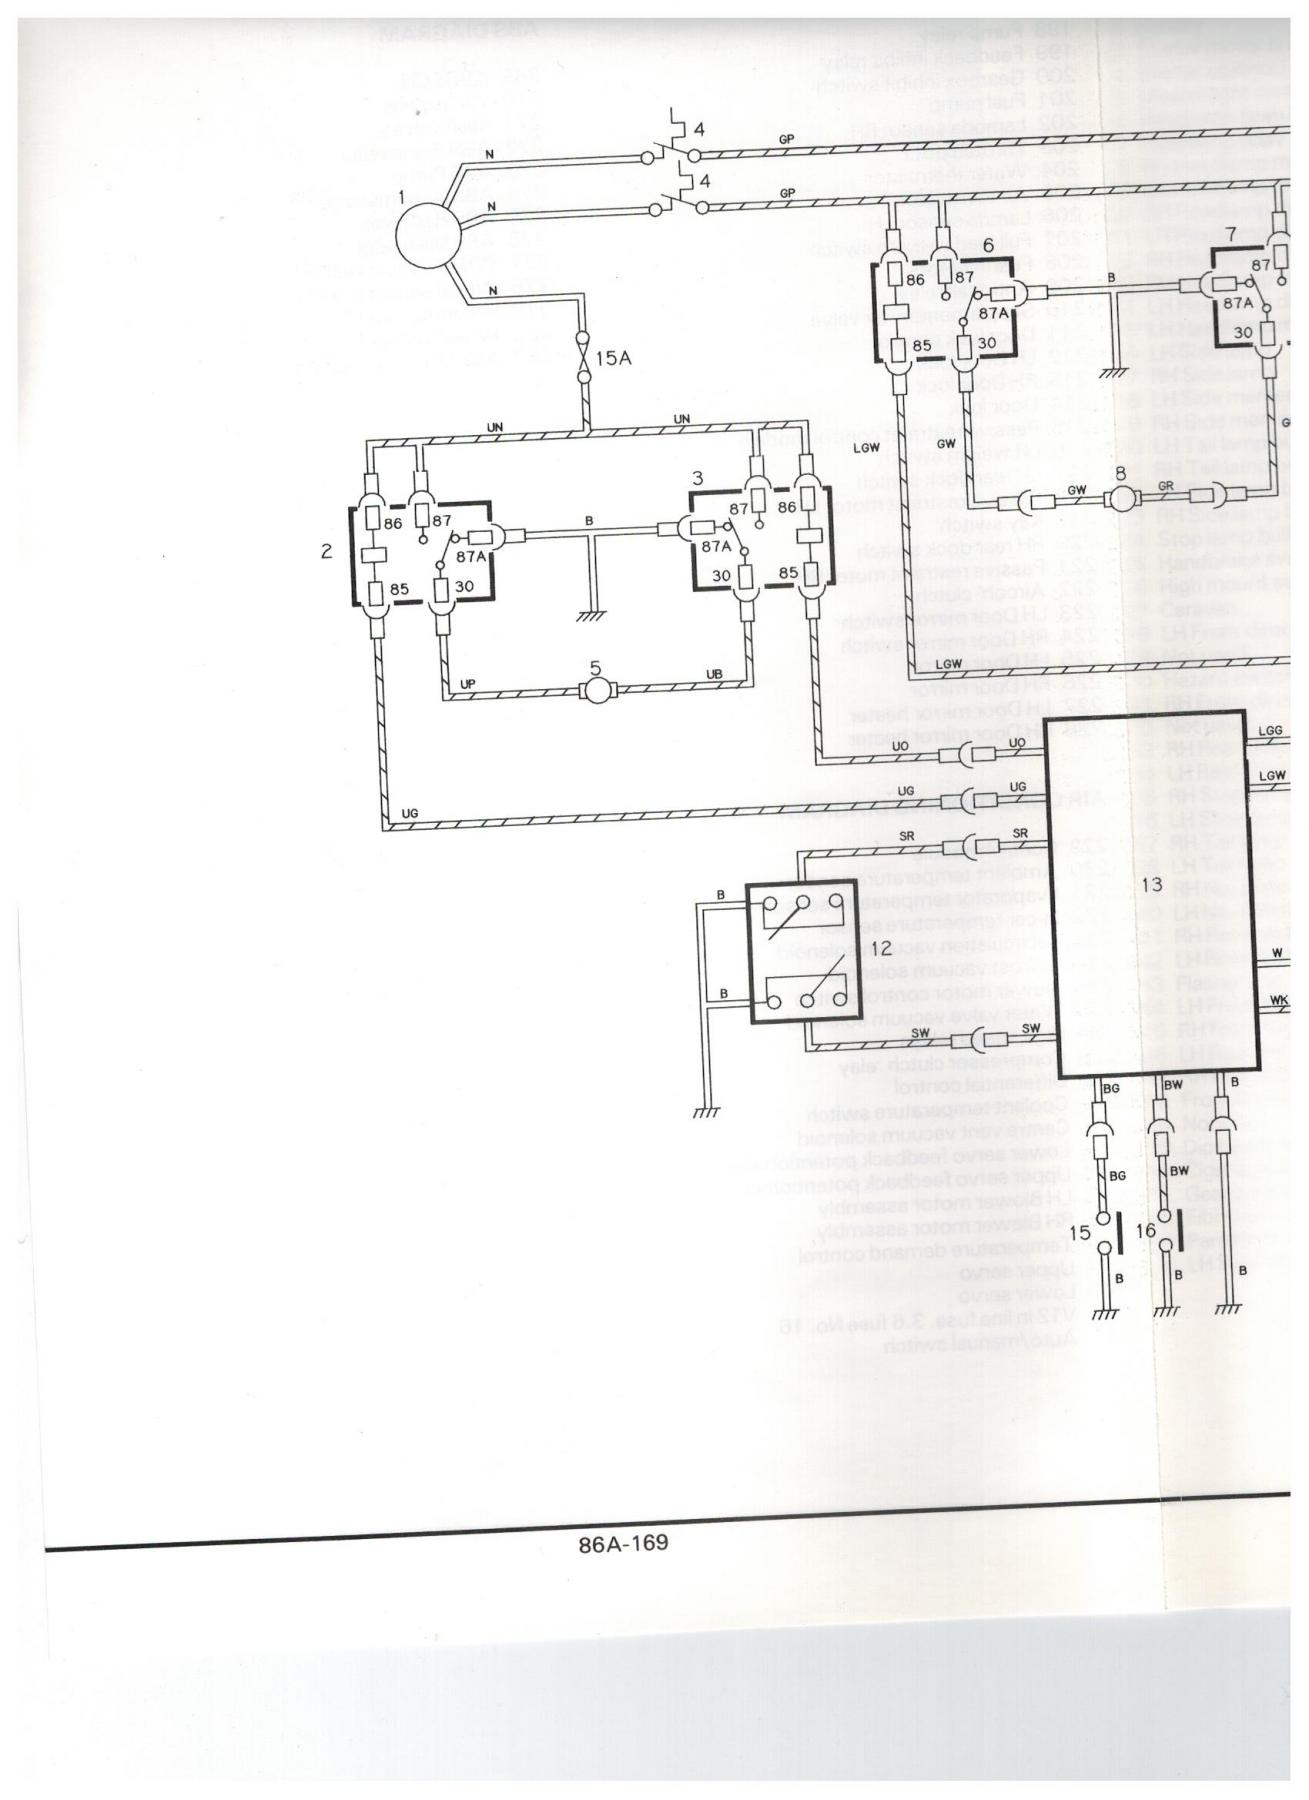 xjs wiring diagram